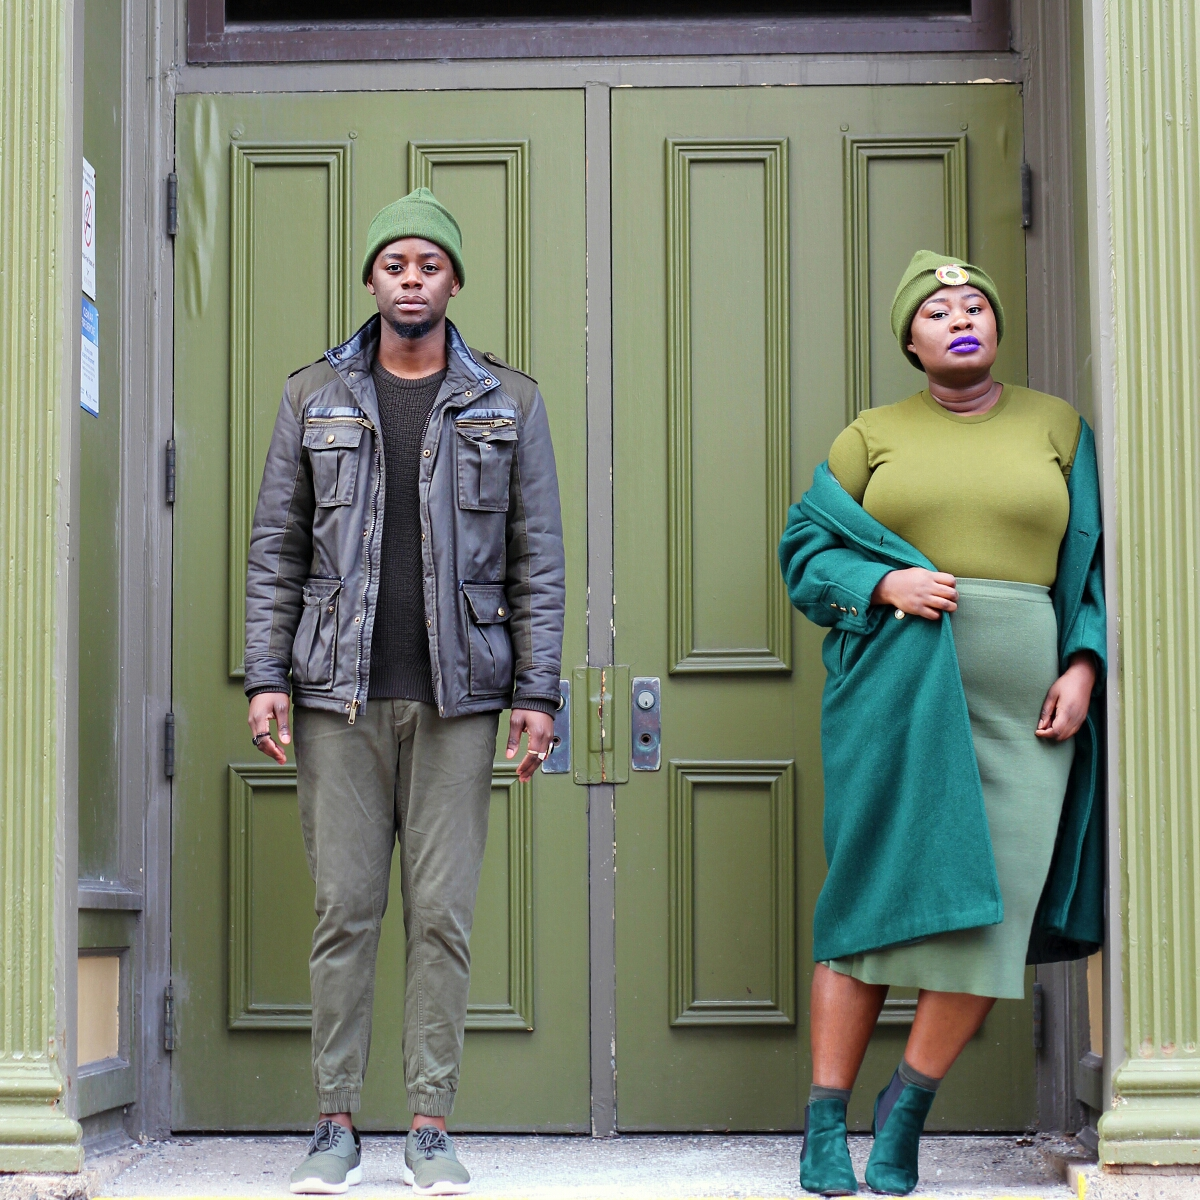 style twins stylish siblings stylish duos style duos green street style all green outfit his and hers green outfits 05